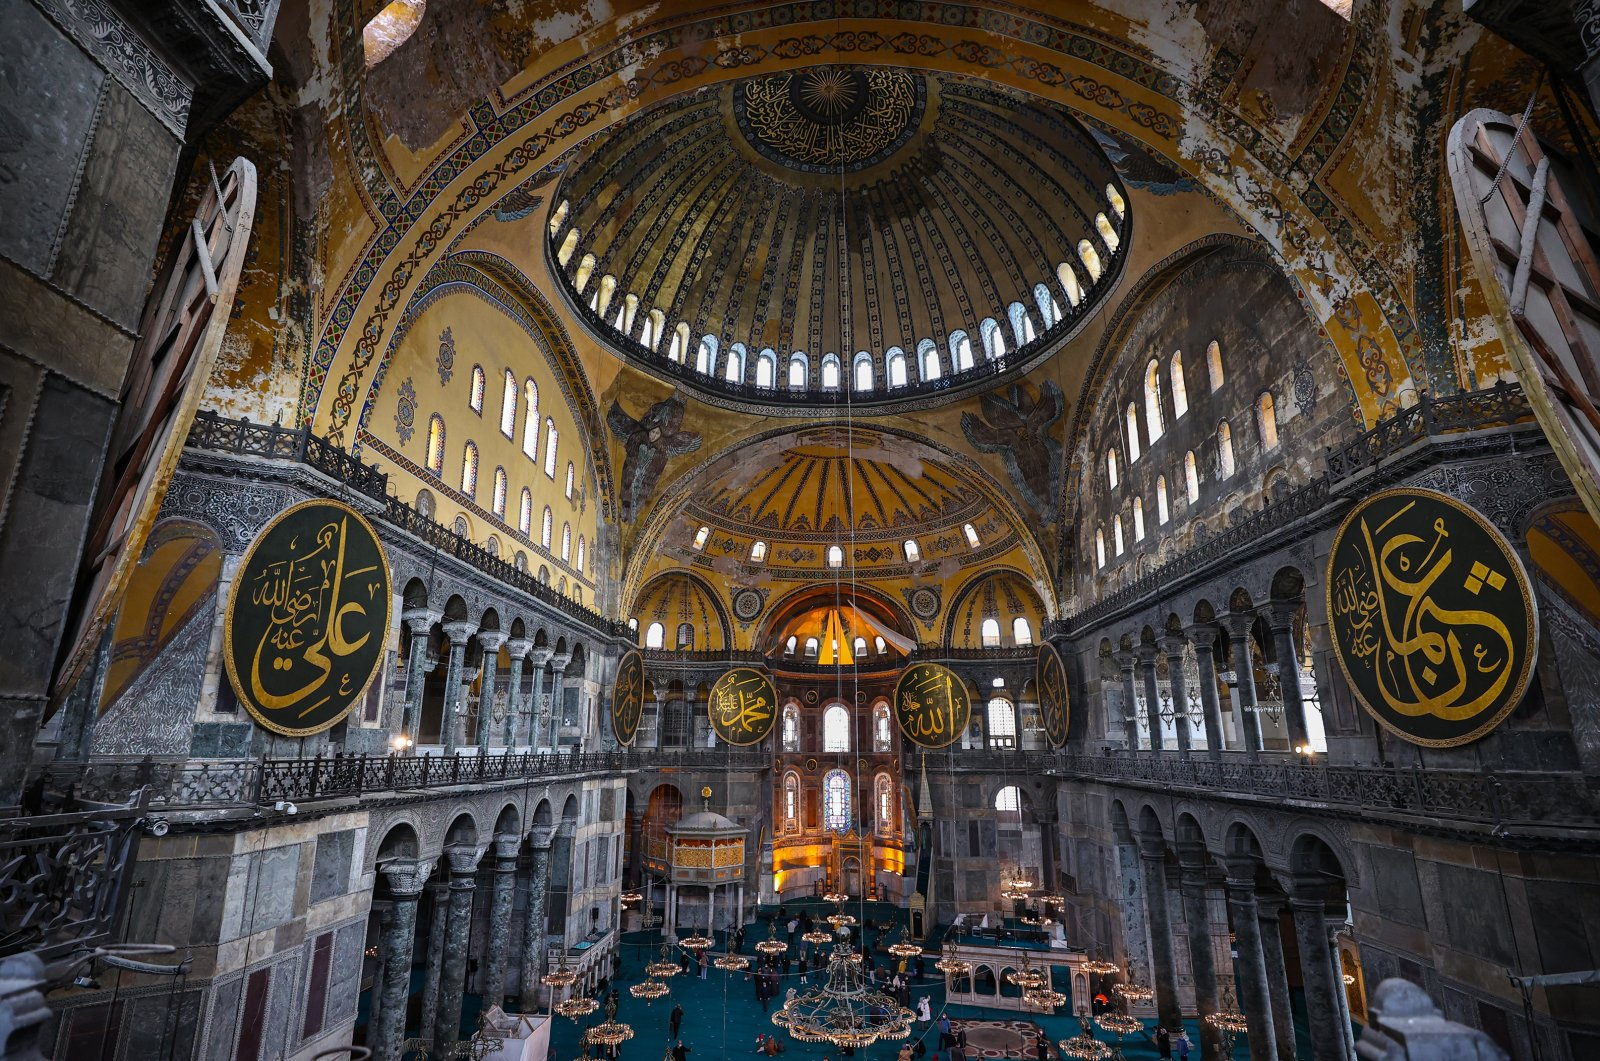 Restoration of Istanbul's Hagia Sophia sets example for world